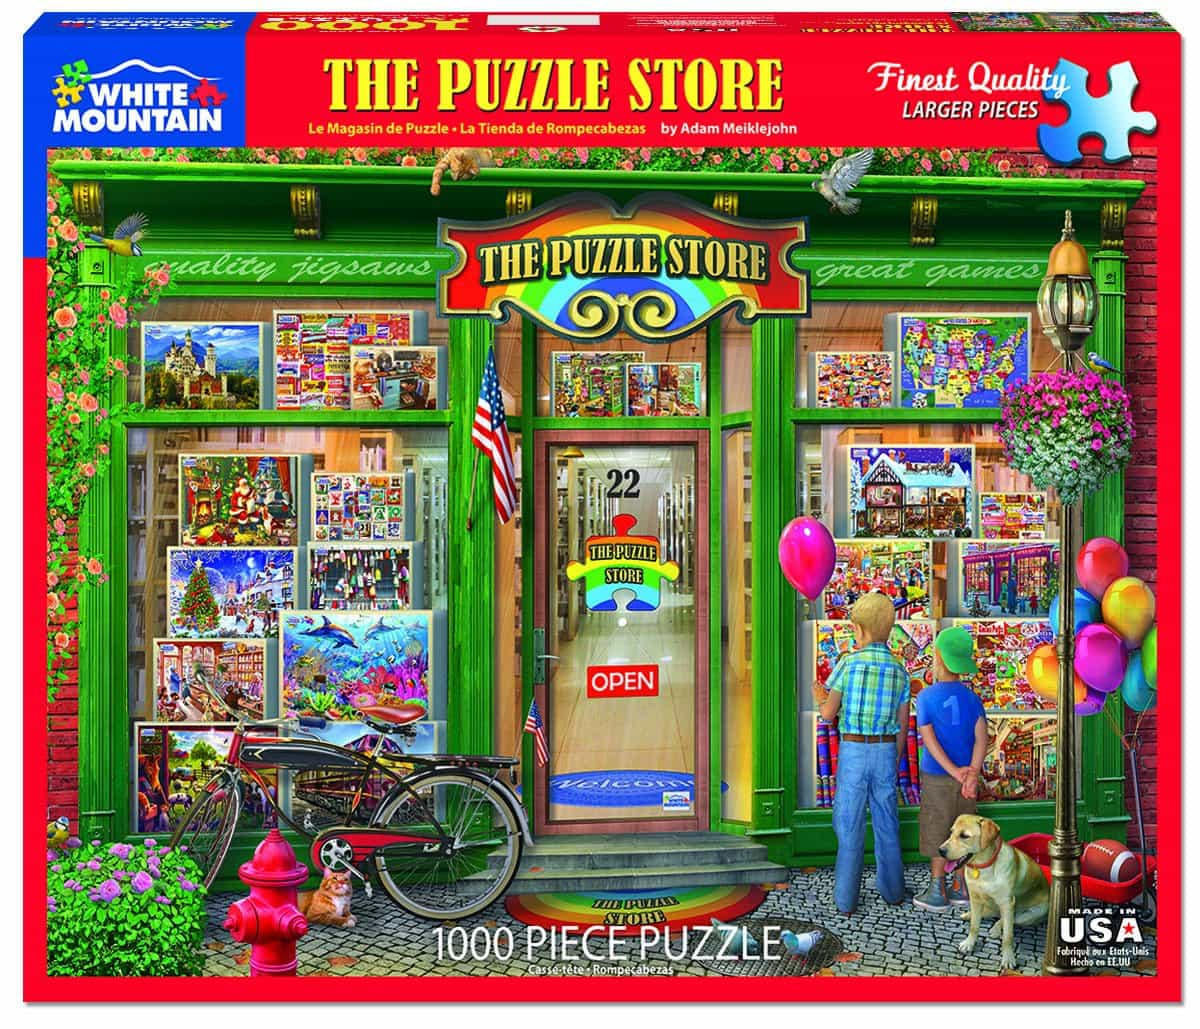 White Mountain Puzzle Shop 1000 Piece Jigsaw Puzzle